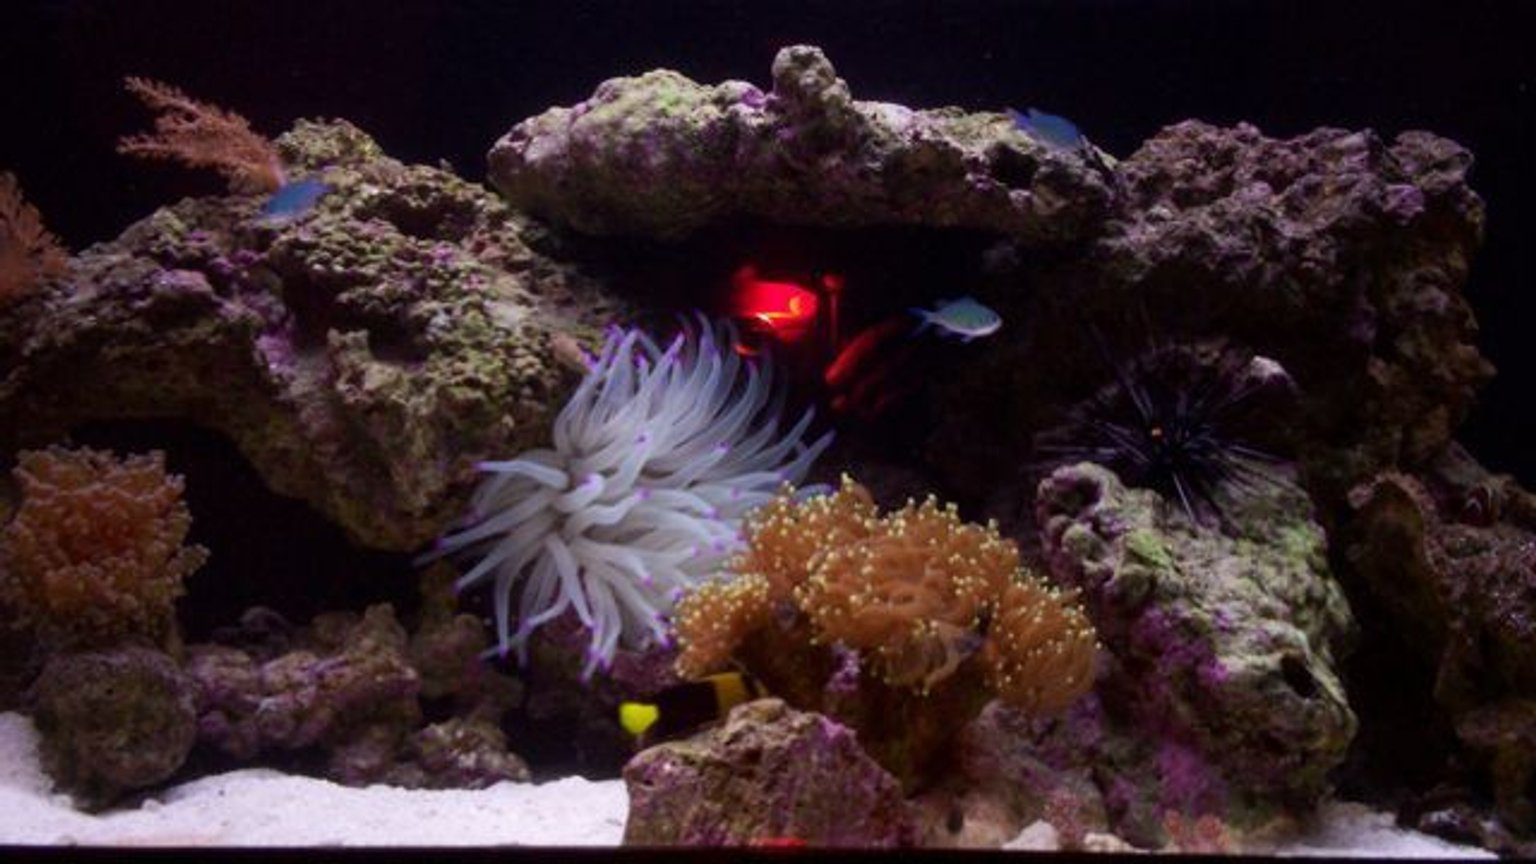 fish tank picture - another photo